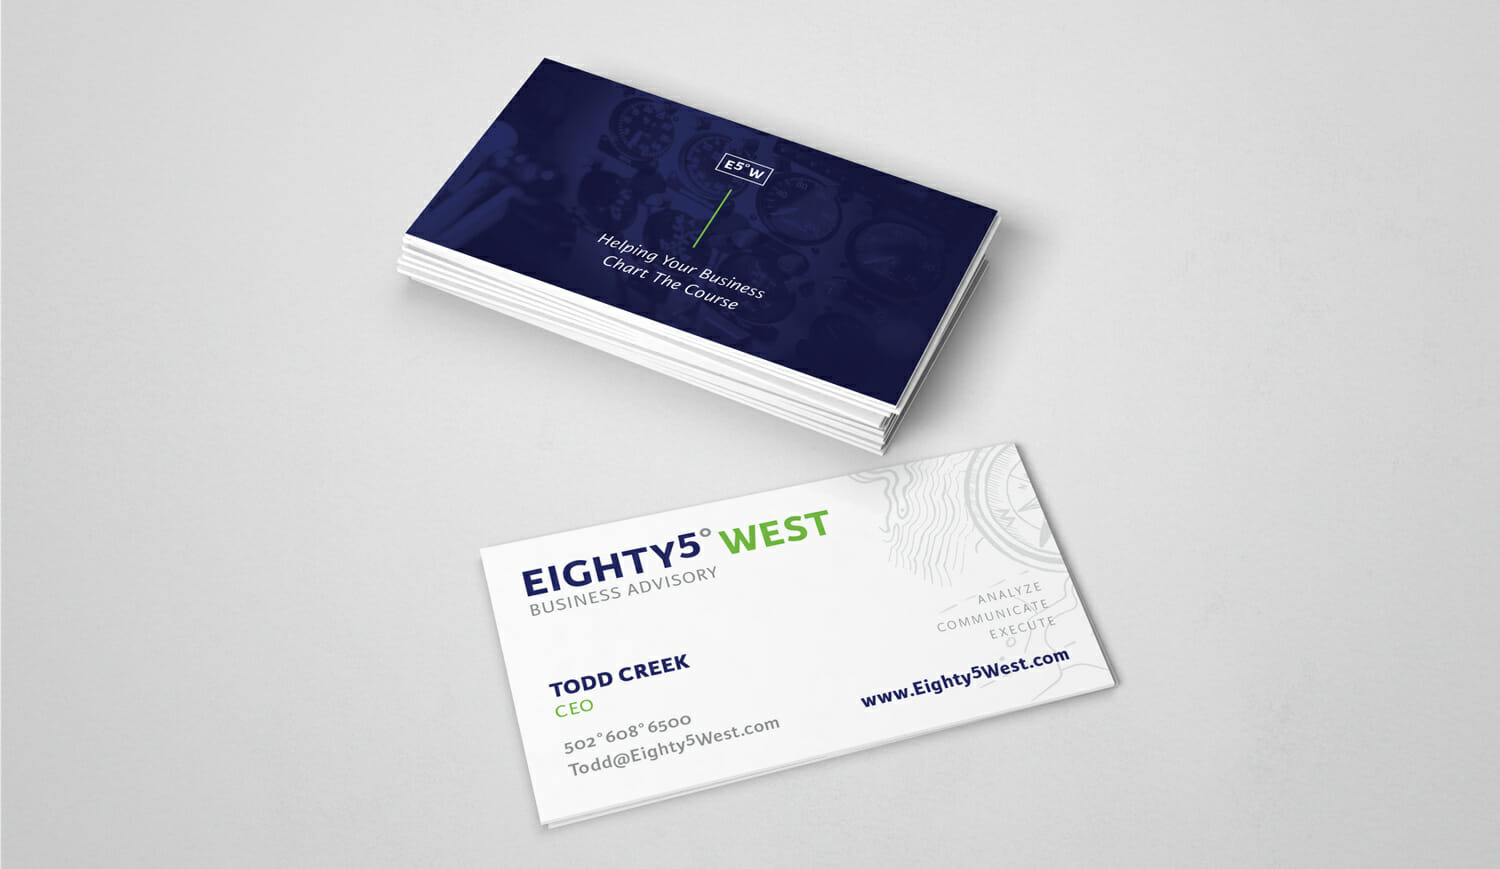 eighty-5-west-Business-Card-Mockups